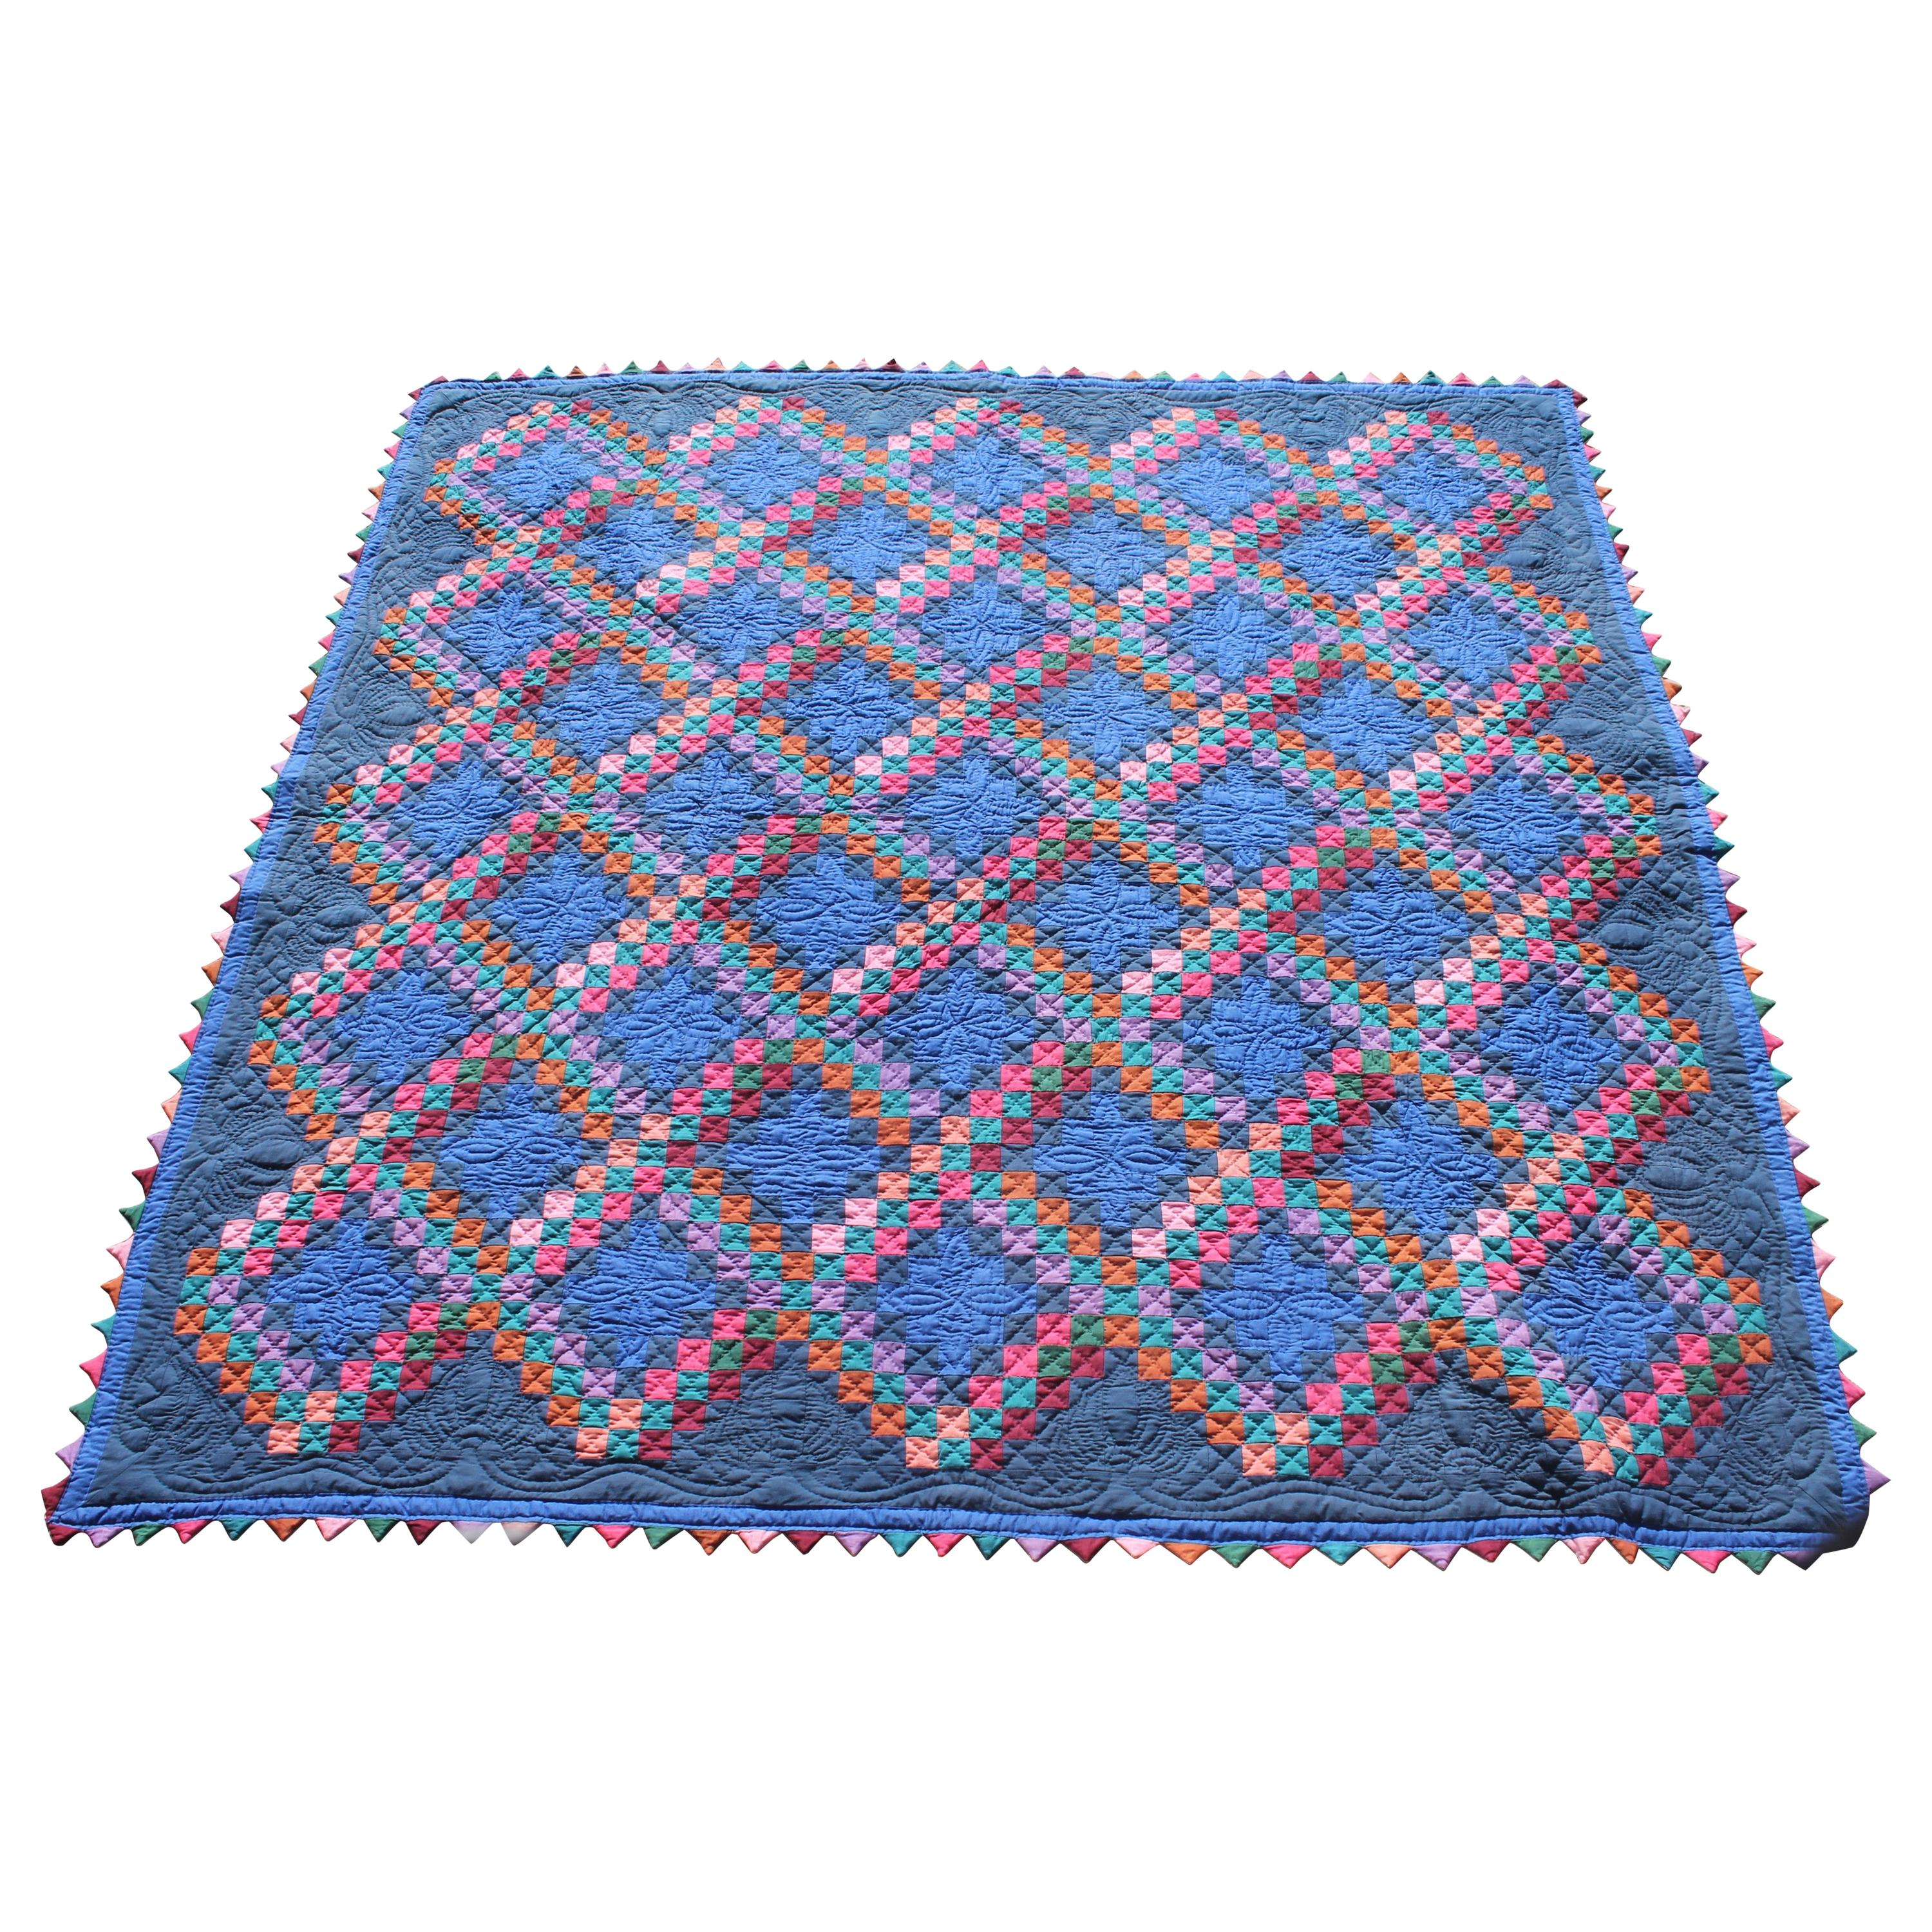 Antique Amish Quilt From Ohio Postage Stamp Chain